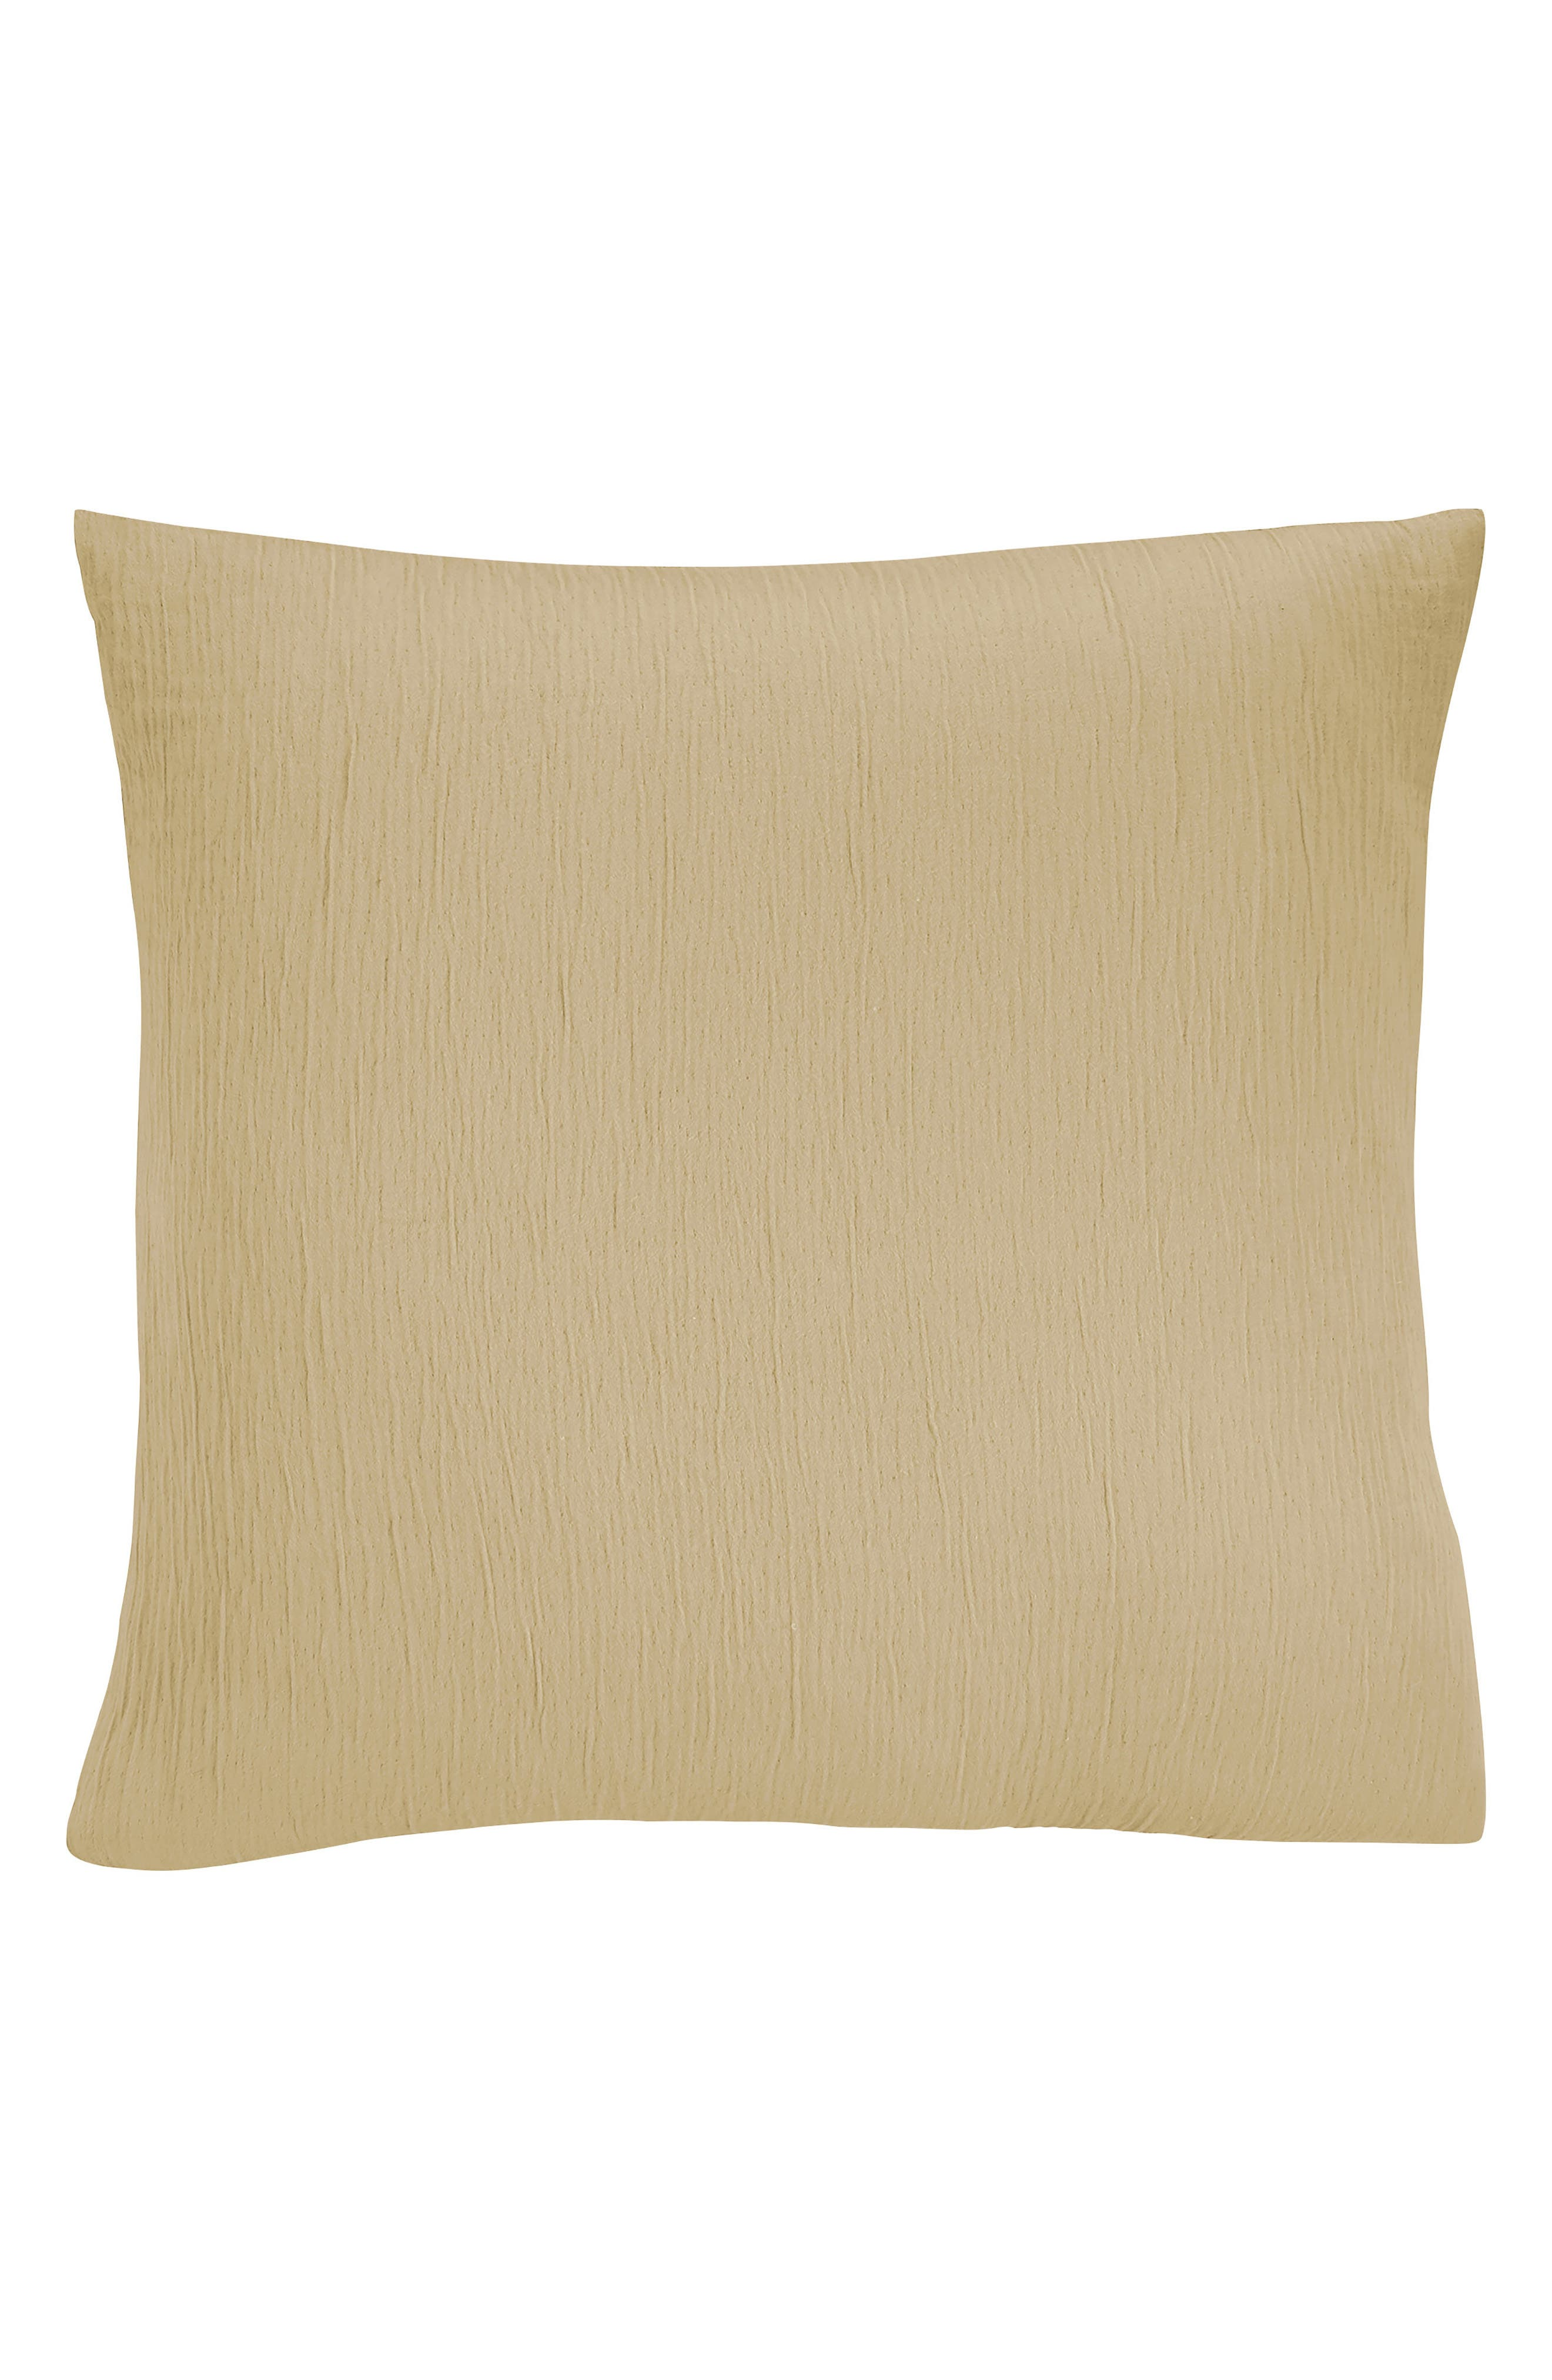 Donna Karan Casual Luxe Euro Sham,                             Main thumbnail 1, color,                             Gold